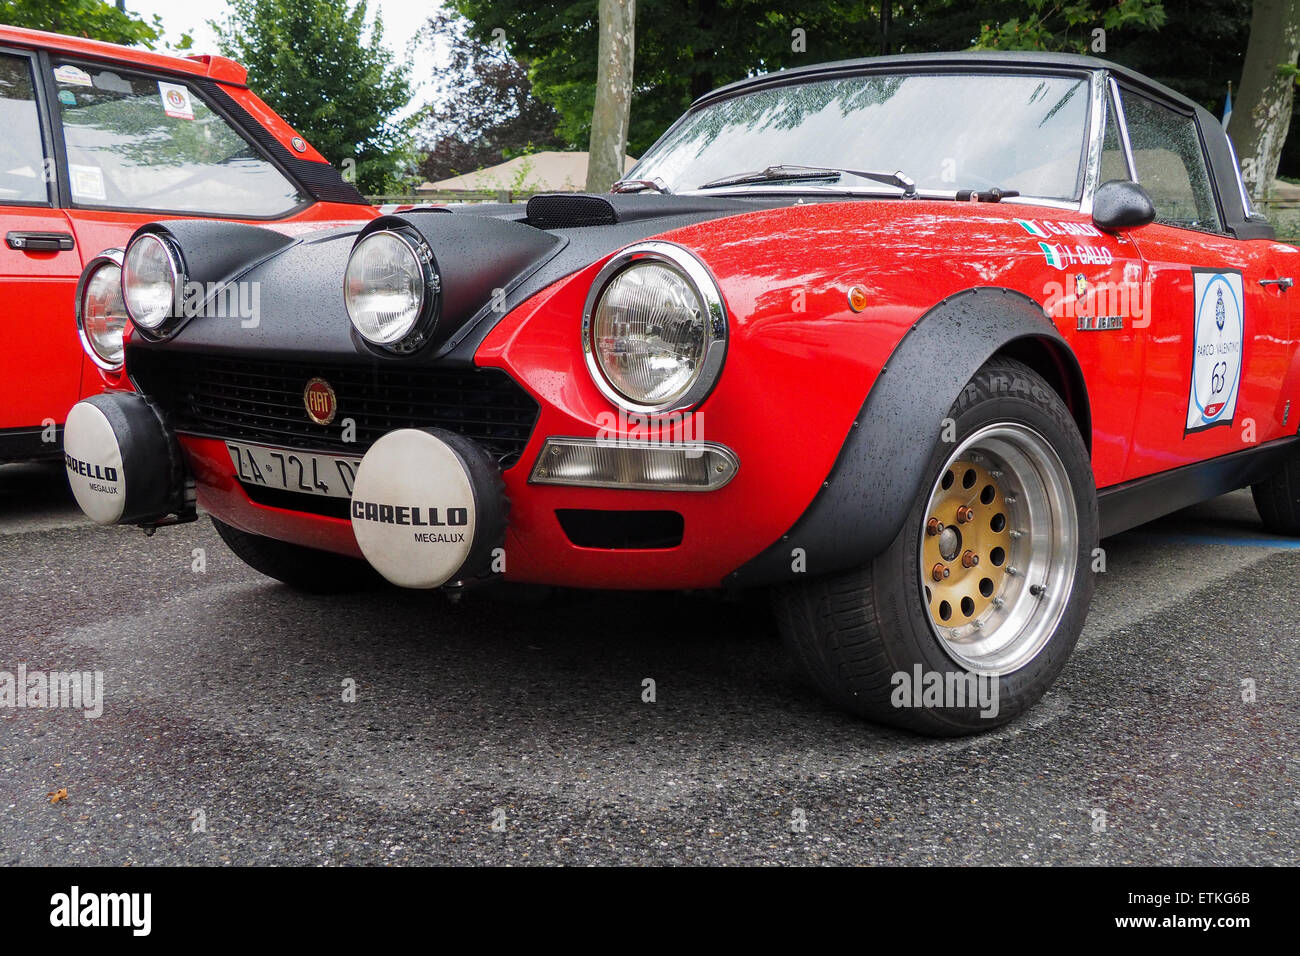 turin italy 14th june 2015 closeup view of a fiat 124 spider stock photo 84023027 alamy. Black Bedroom Furniture Sets. Home Design Ideas